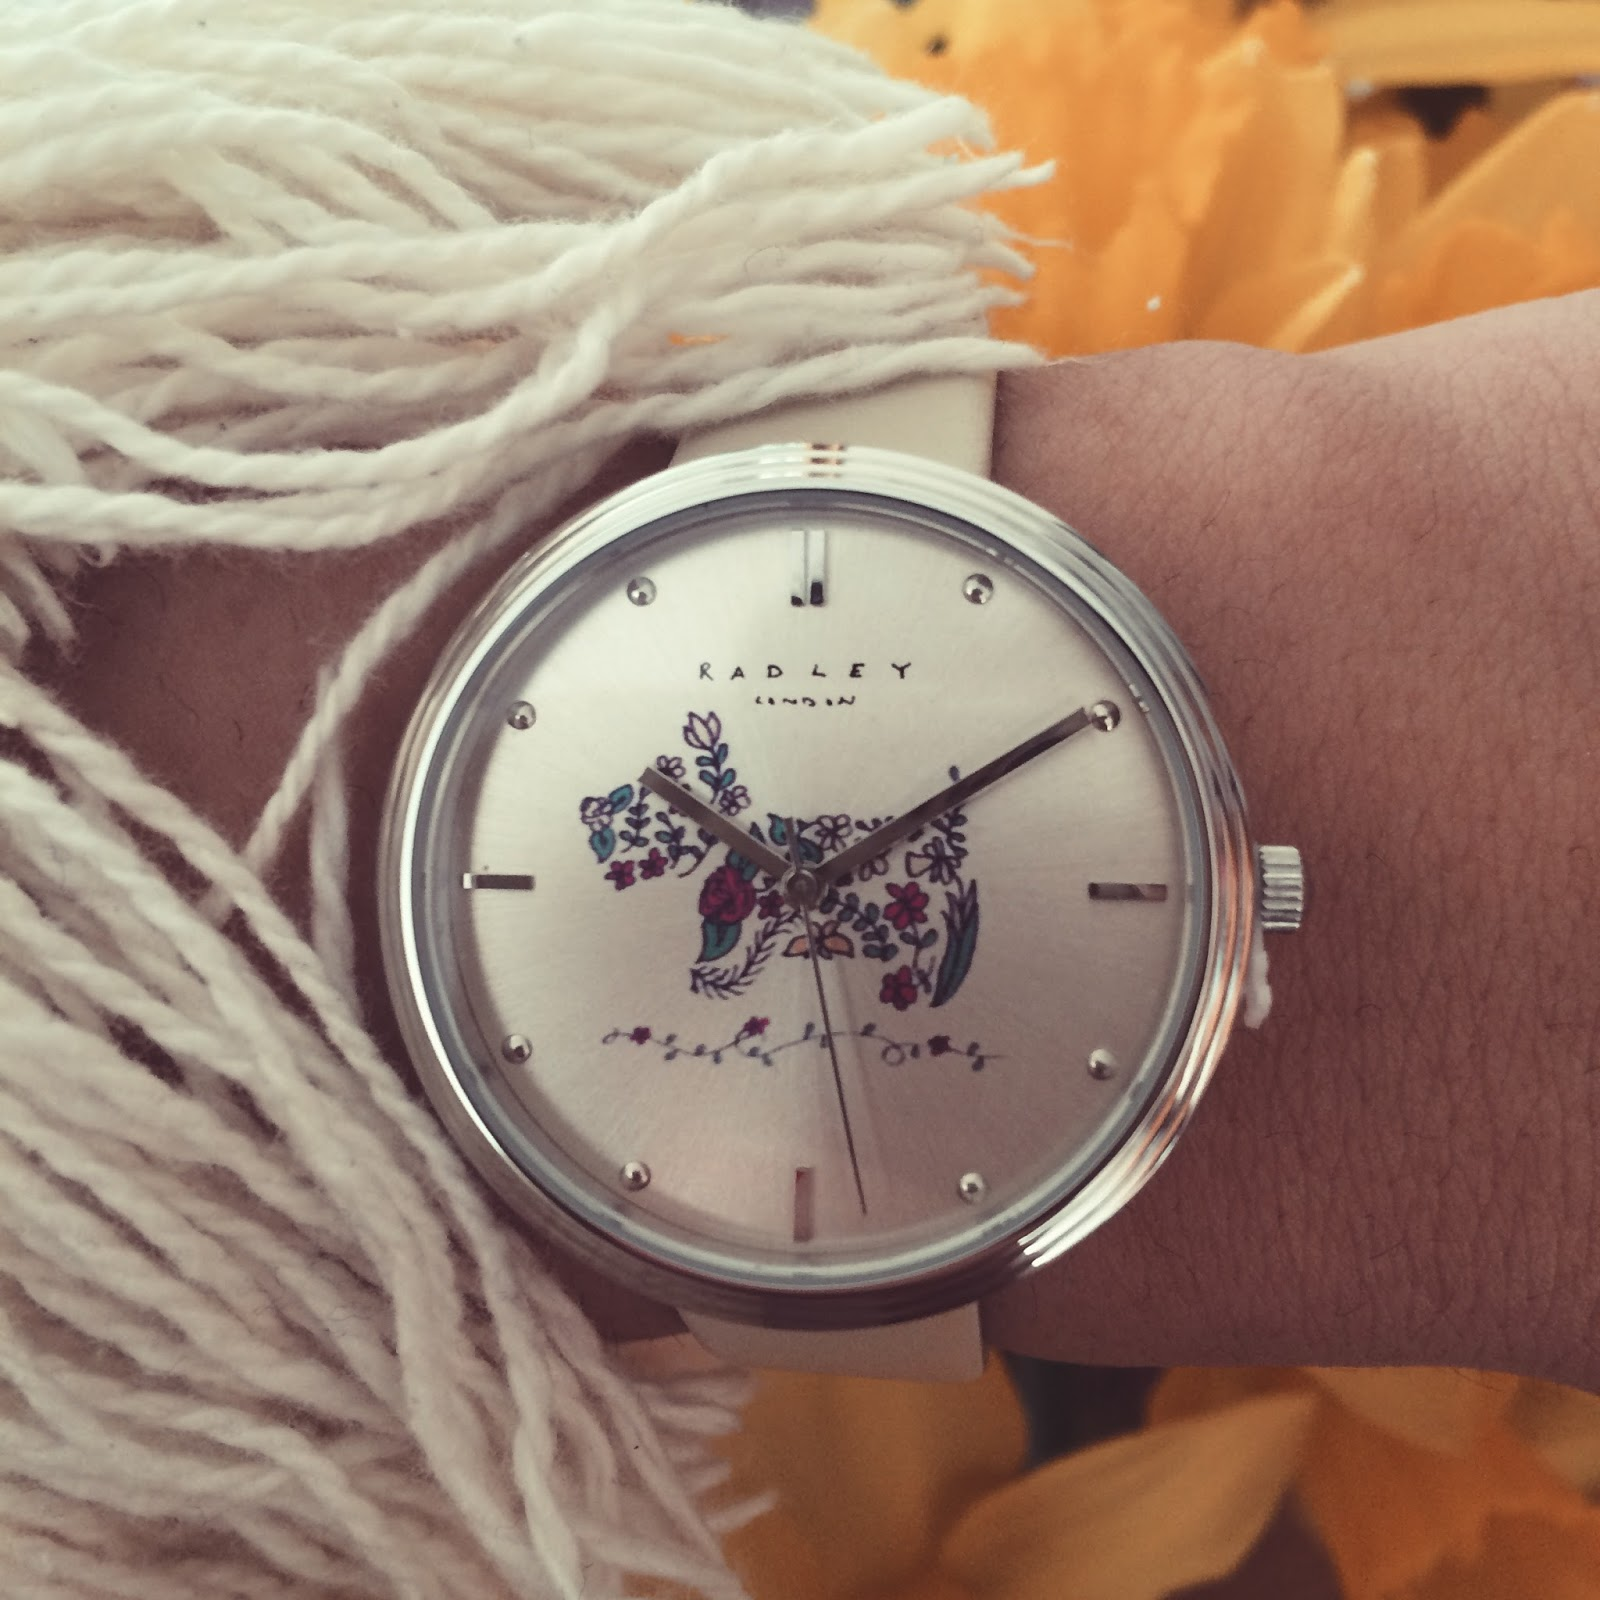 Ana Maddock- Radley London Rosemary's Garden House of Watches